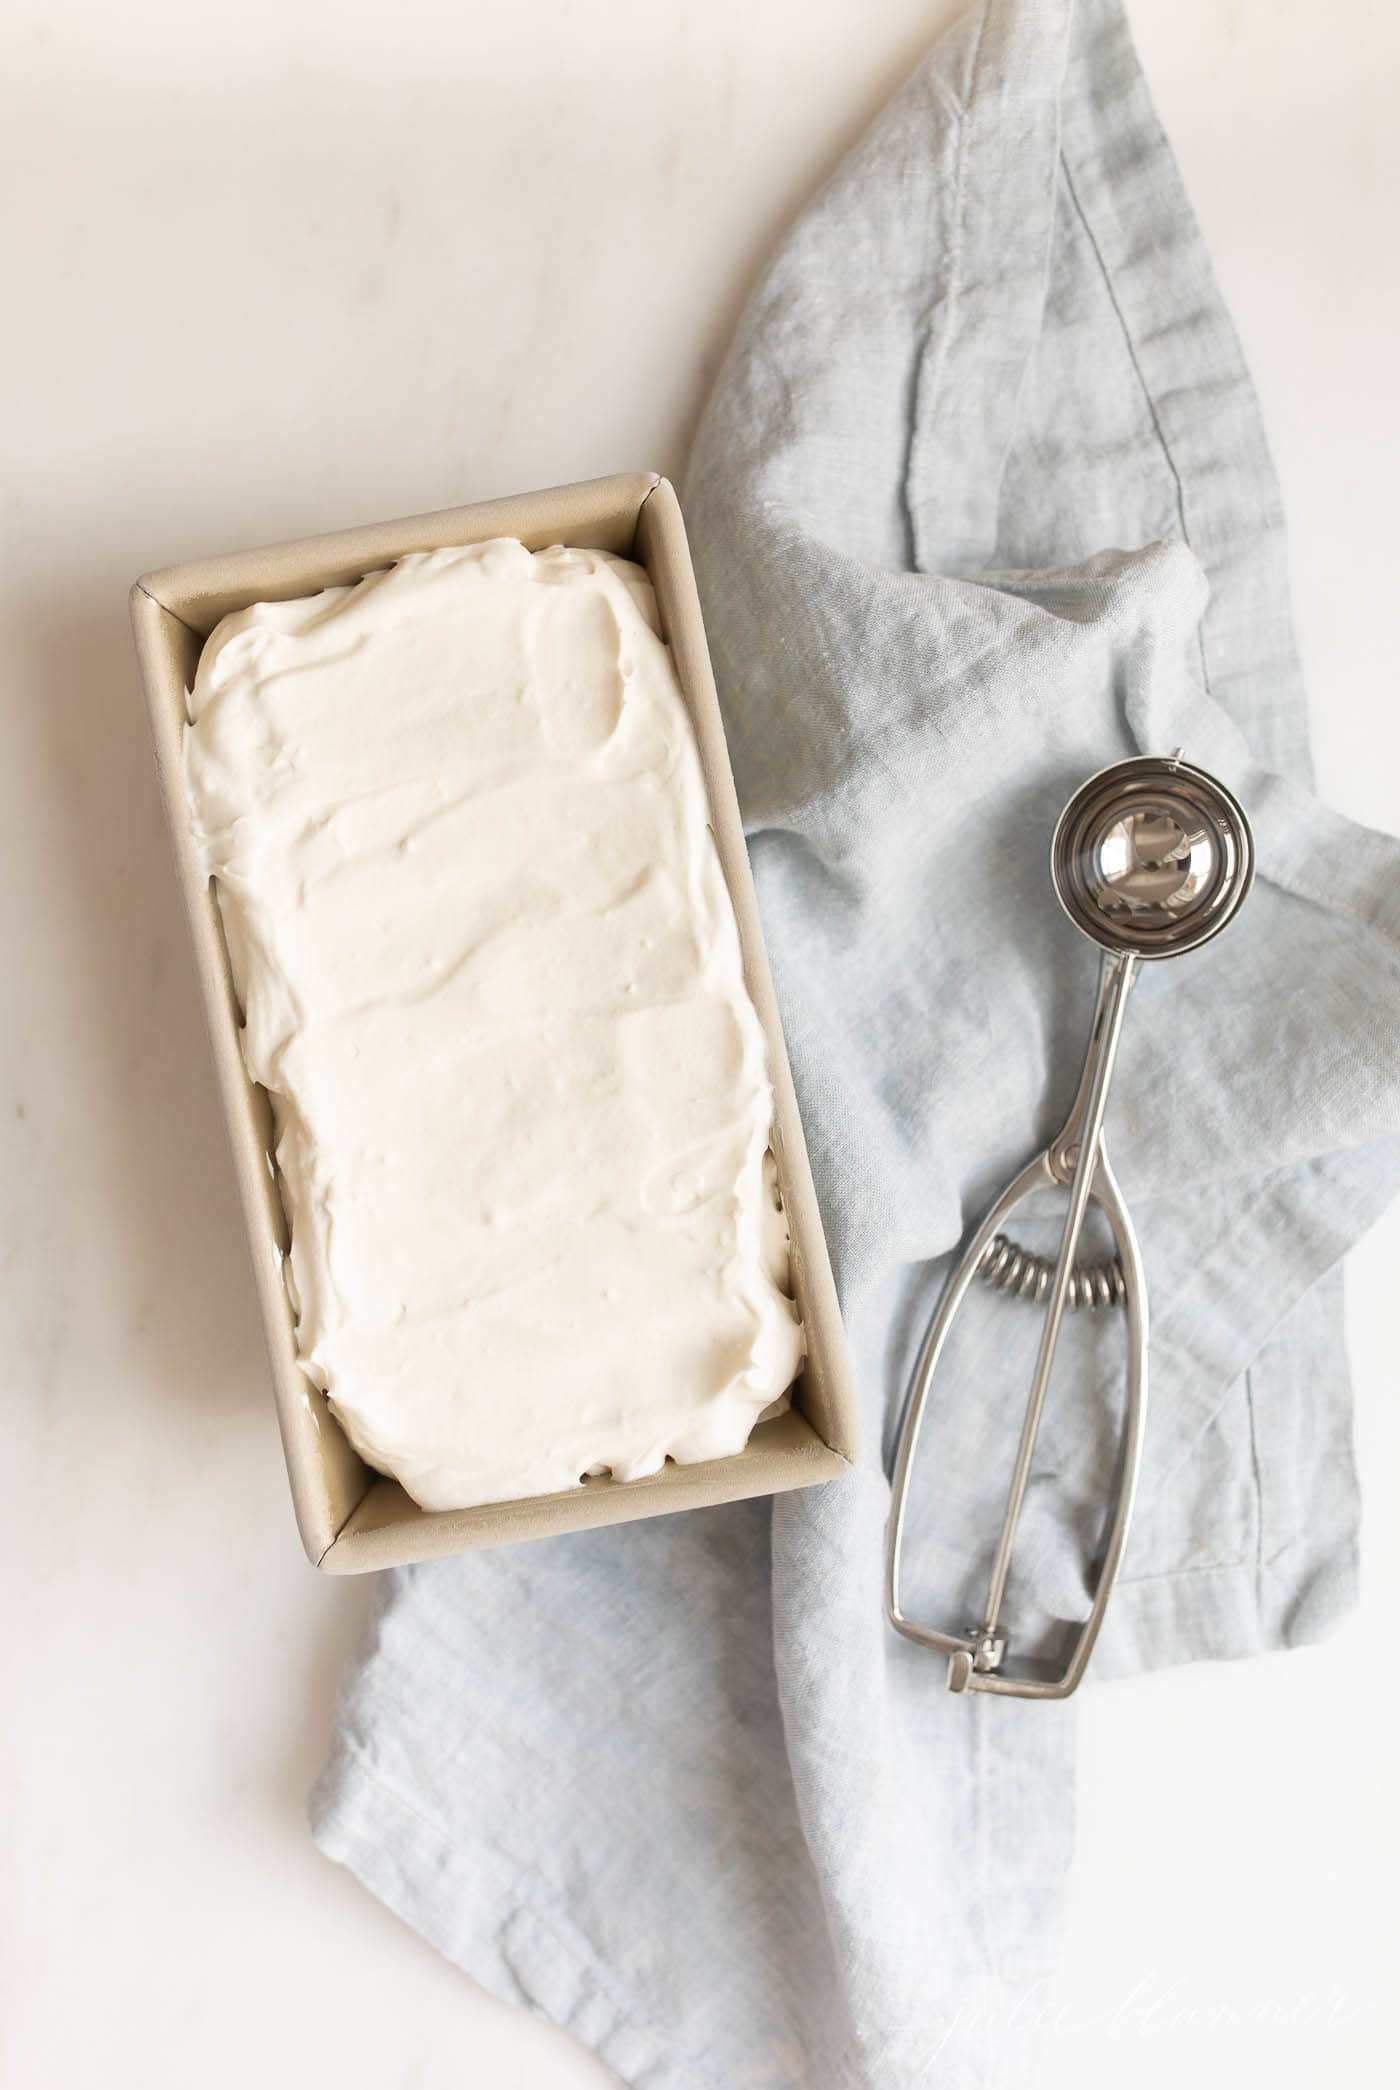 Cream cheese ice cream heading in freezer